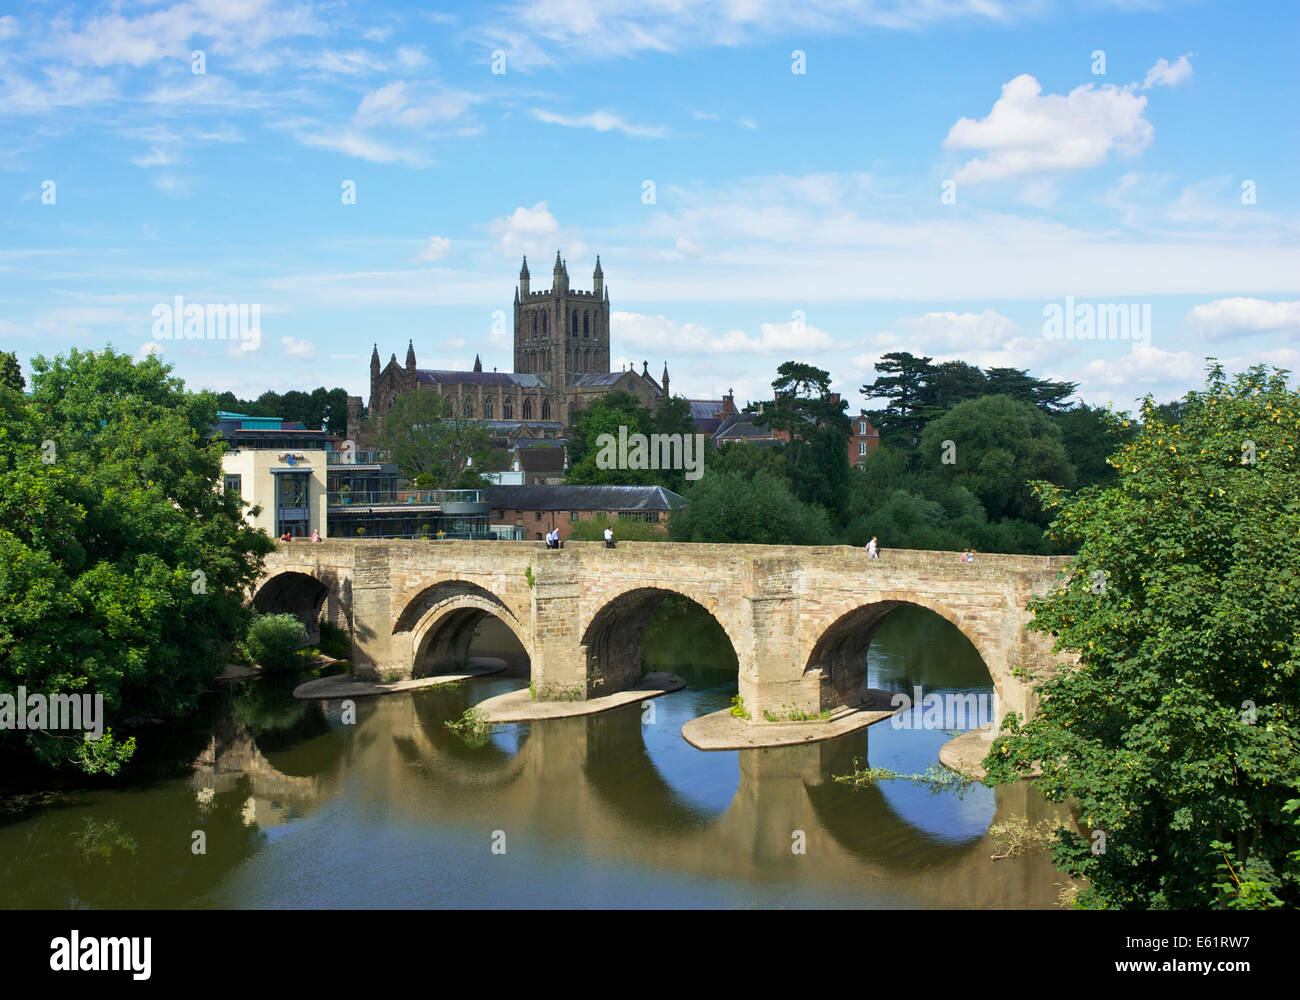 Hereford Cathedral and bridge over the River Wye, Herefordshire, England UK - Stock Image